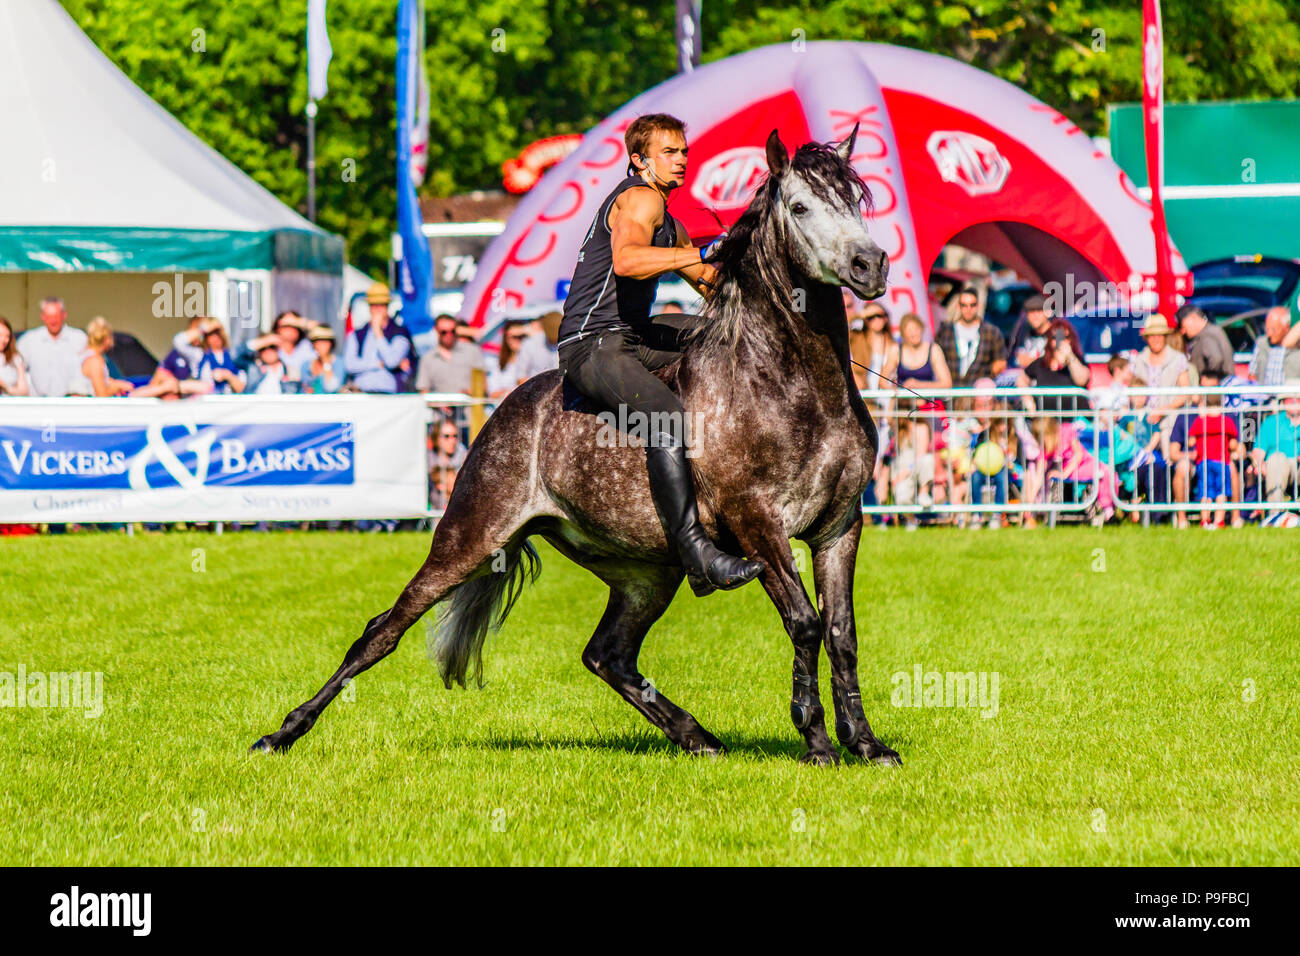 Stunt horseman from Atkinson Action Horses performing at Northumberland County Show 2018, UK. Stock Photo